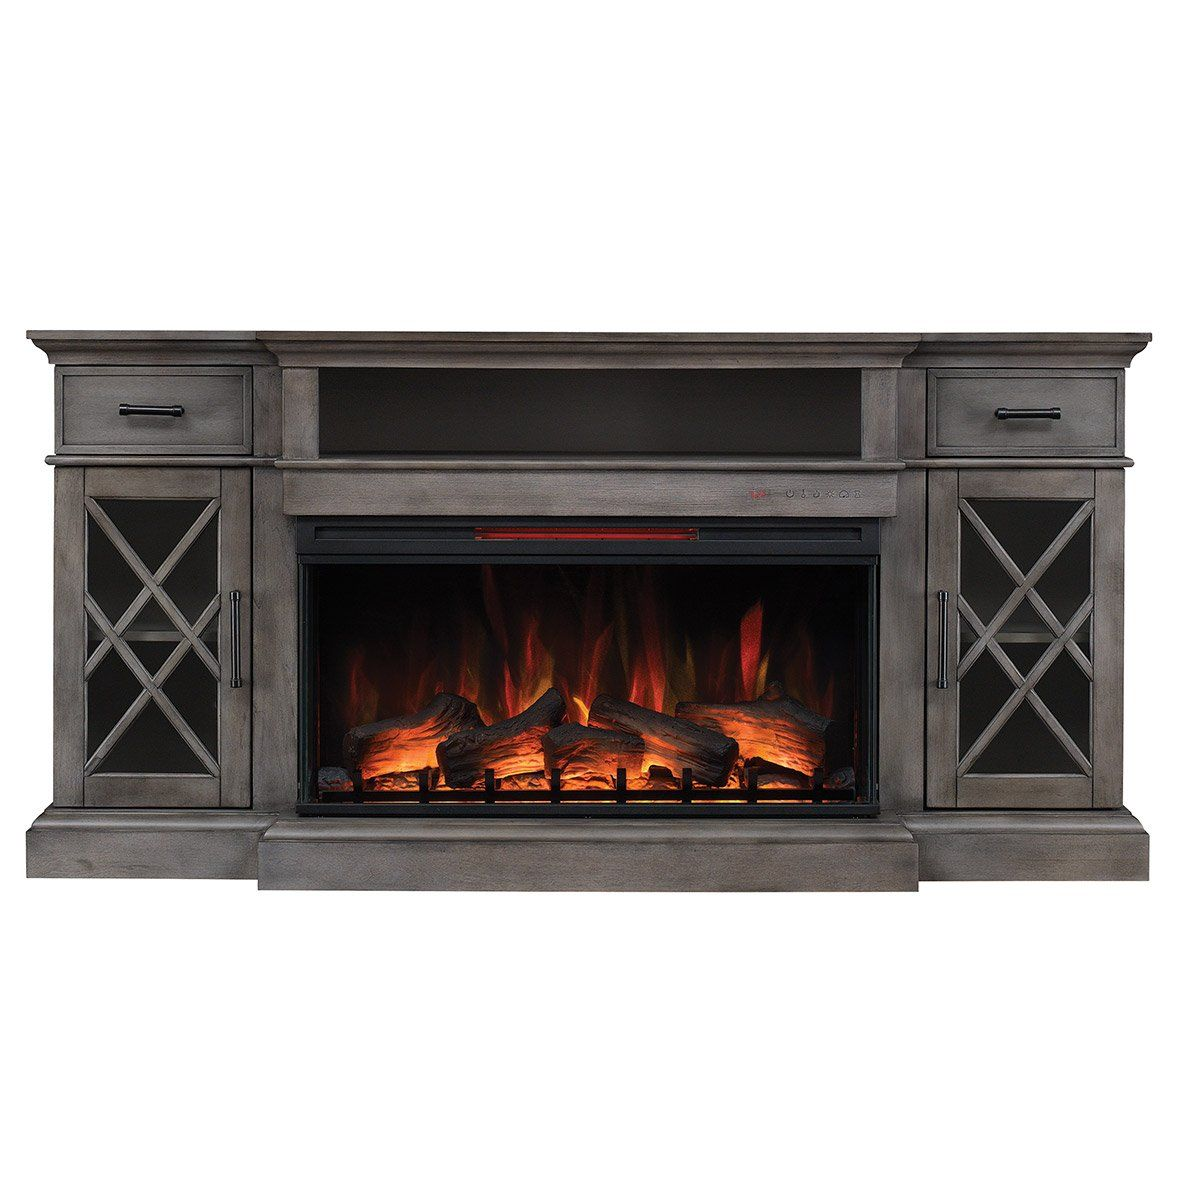 70 Inch Weathered Gray Fireplace TV Stand Hamilton